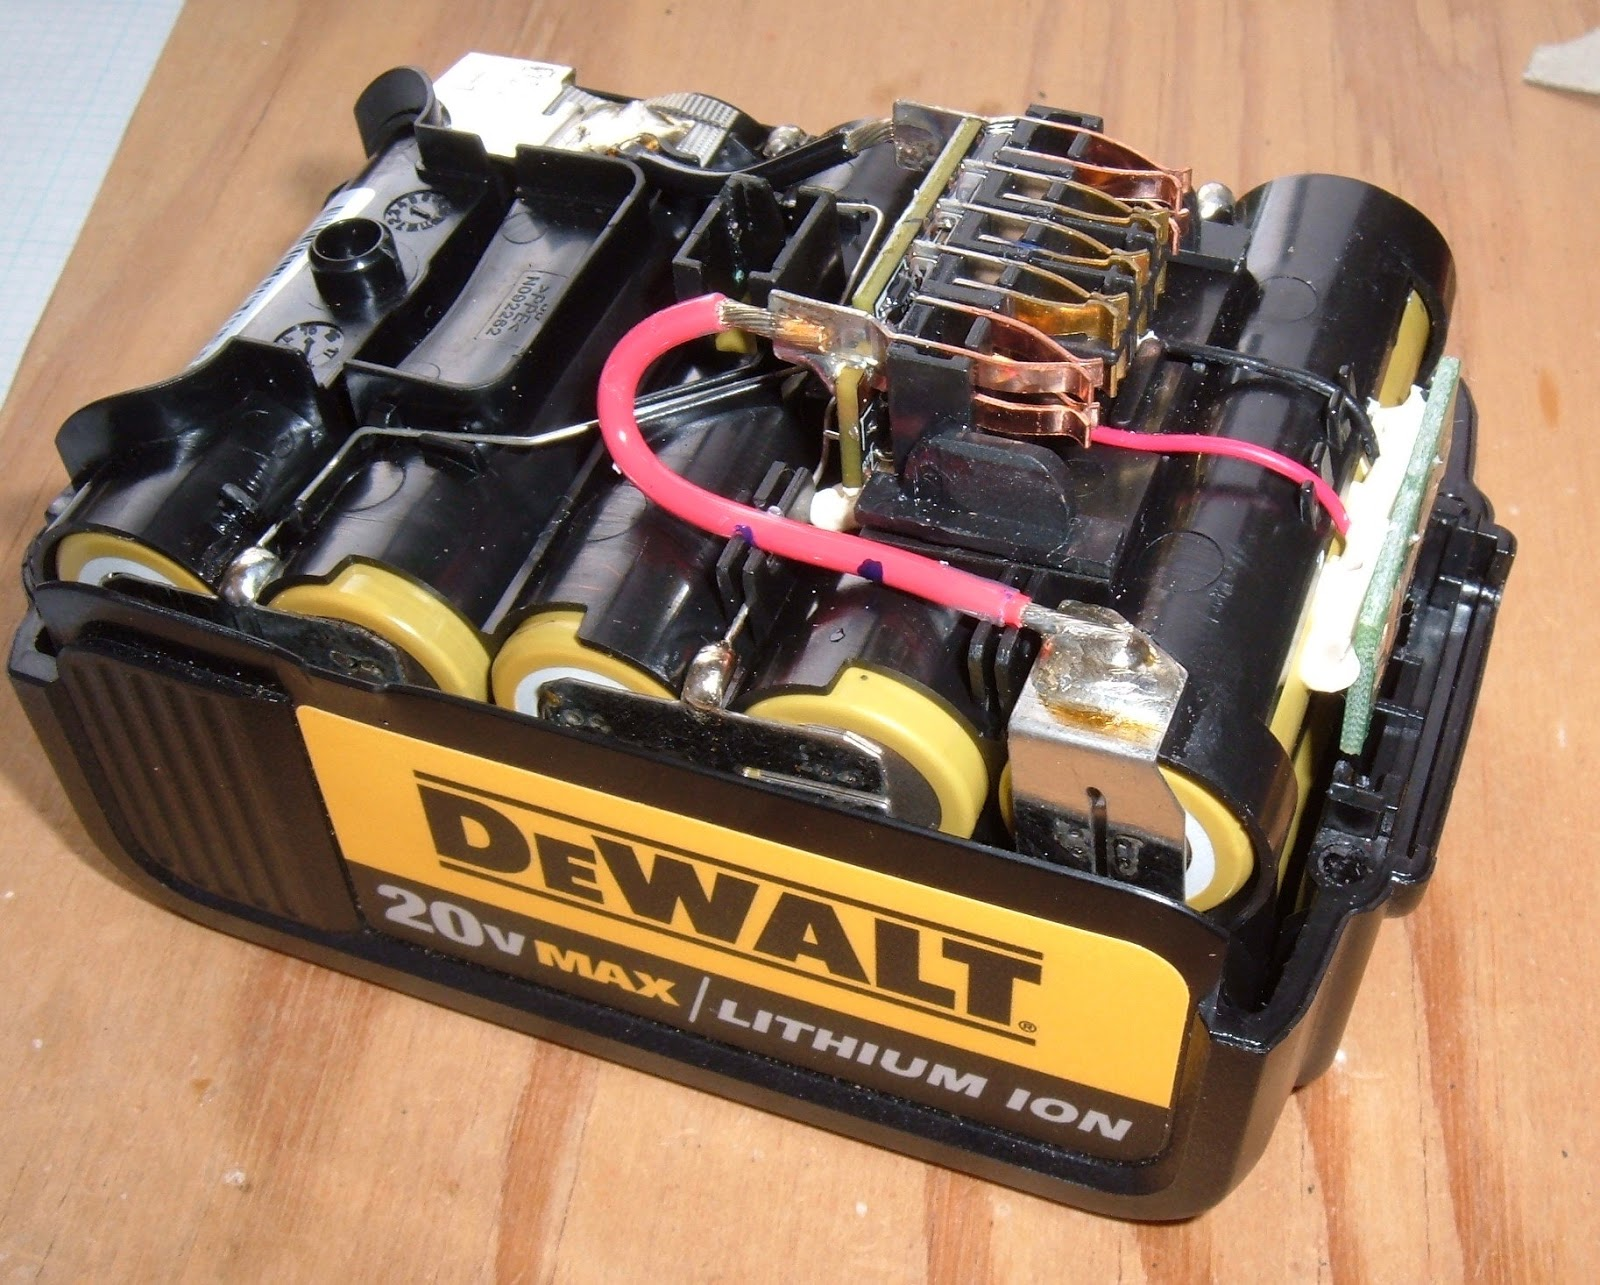 Syonyks Project Blog Dewalt 20v Max 30ah Battery Pack Teardown Wire Diagram 12v Jumpbox After A Bit More Prying The Is Out There Are 10 Cells 2p5s And Theyre Held Together With Rather Substantial Interconnect Strips